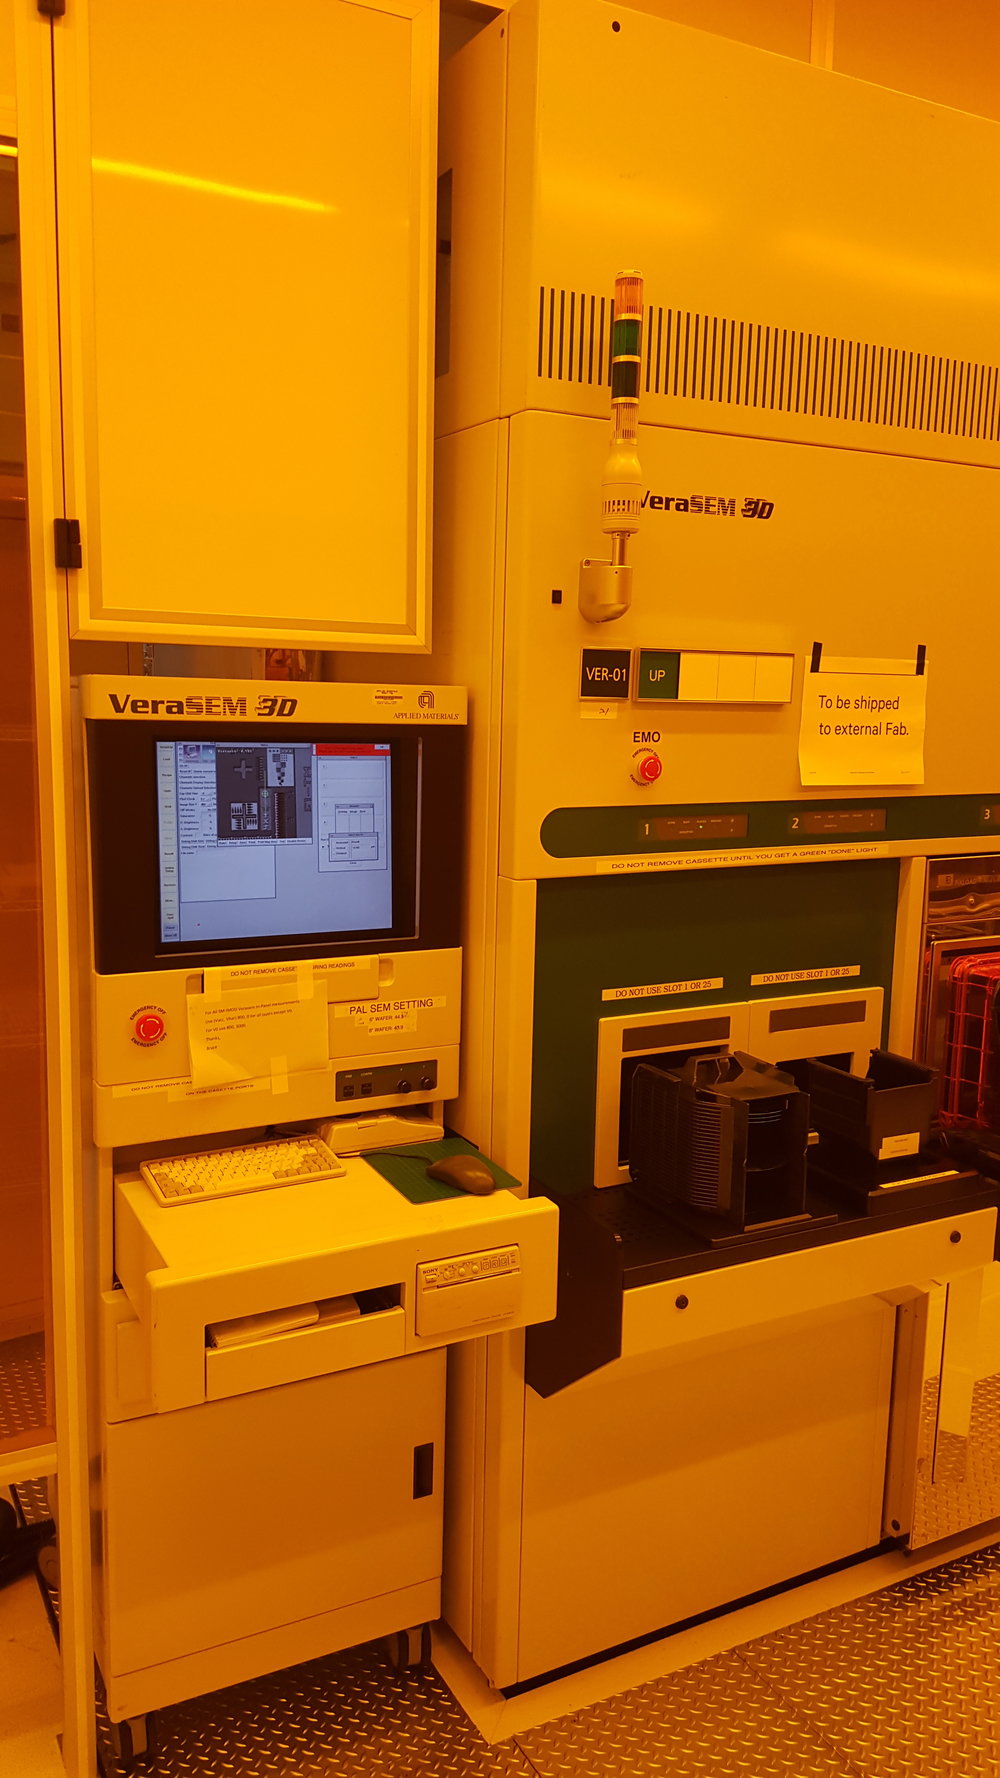 APPLIED MATERIALS (AMAT) VERASEM 3D AUTOMATED CD METROLOGY SYSTEM